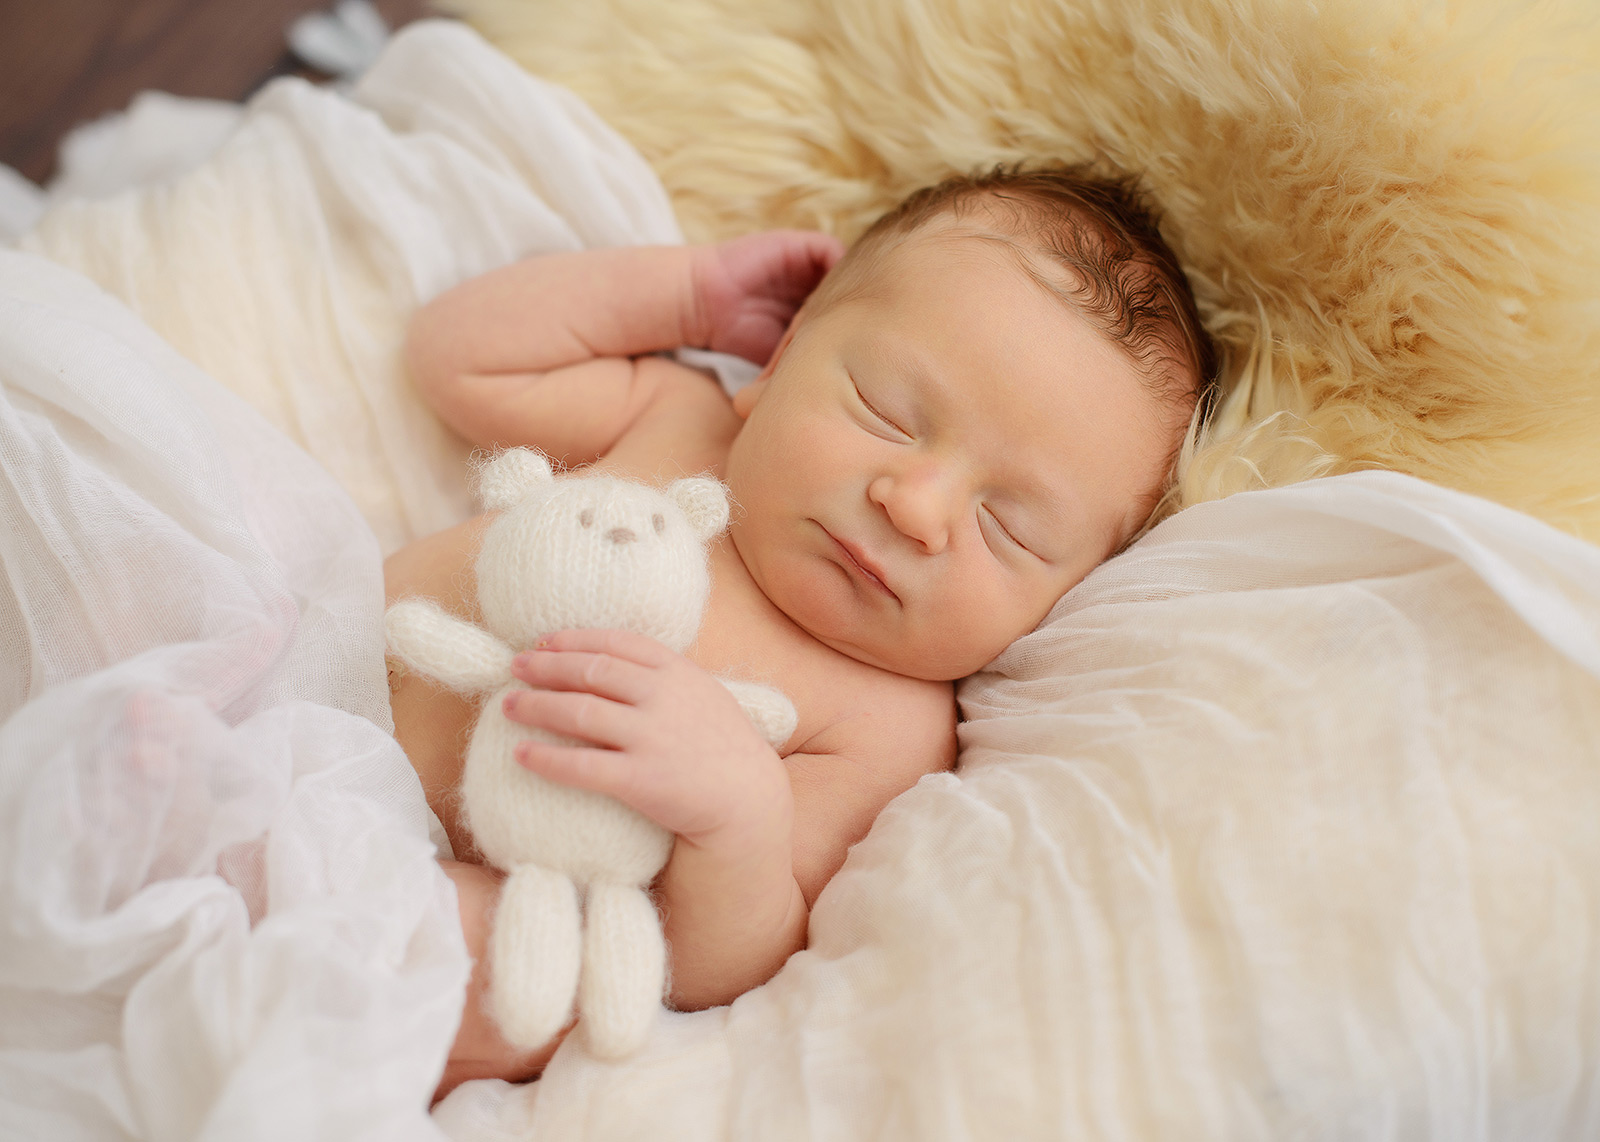 Sleeping newborn baby boy cuddling with stuffed bear toy in our Sacramento studio.